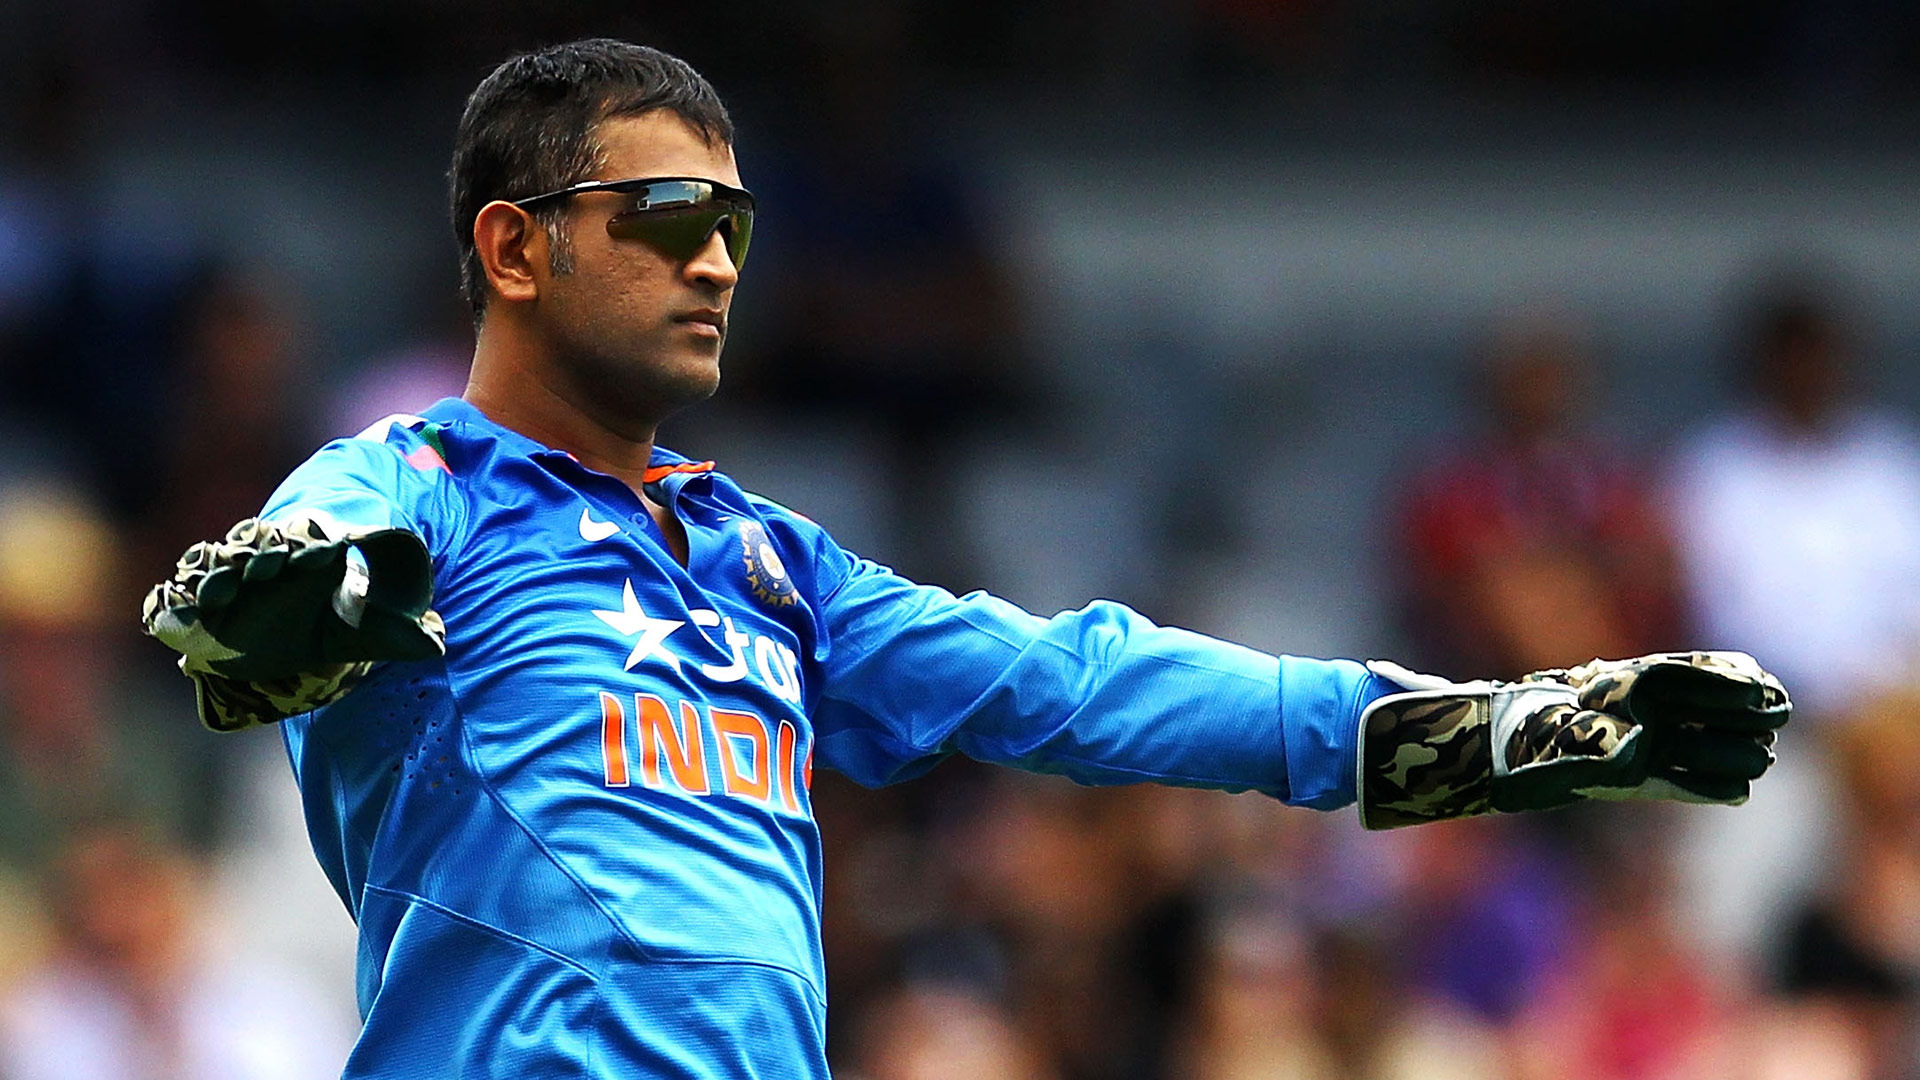 World Reacted on MS Dhoni Stepped Down as Captain of Team India